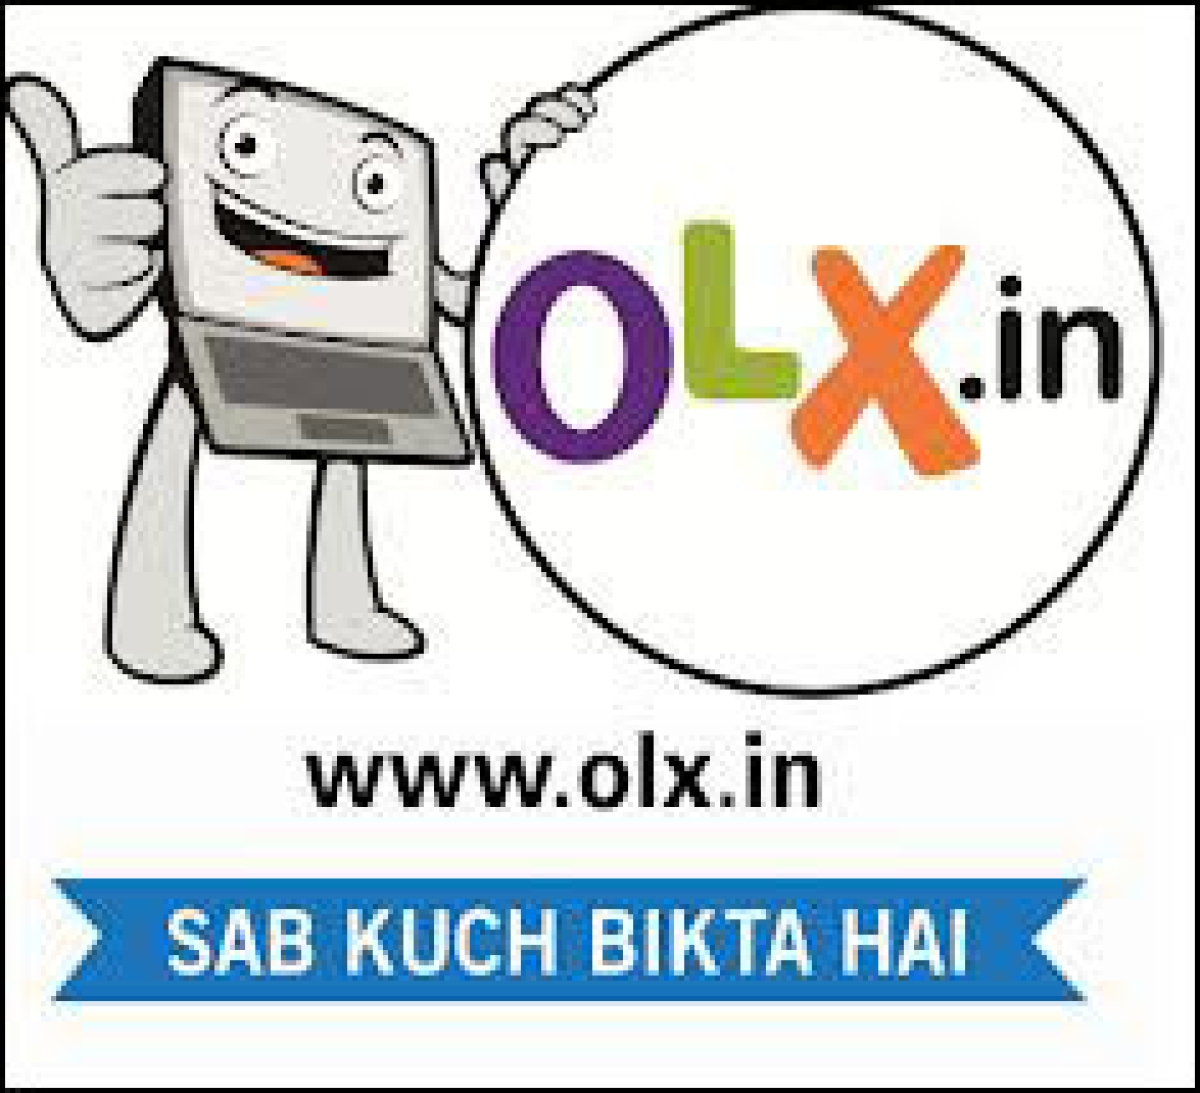 OLX.in to part ways with Saatchi; pitch in the pipeline